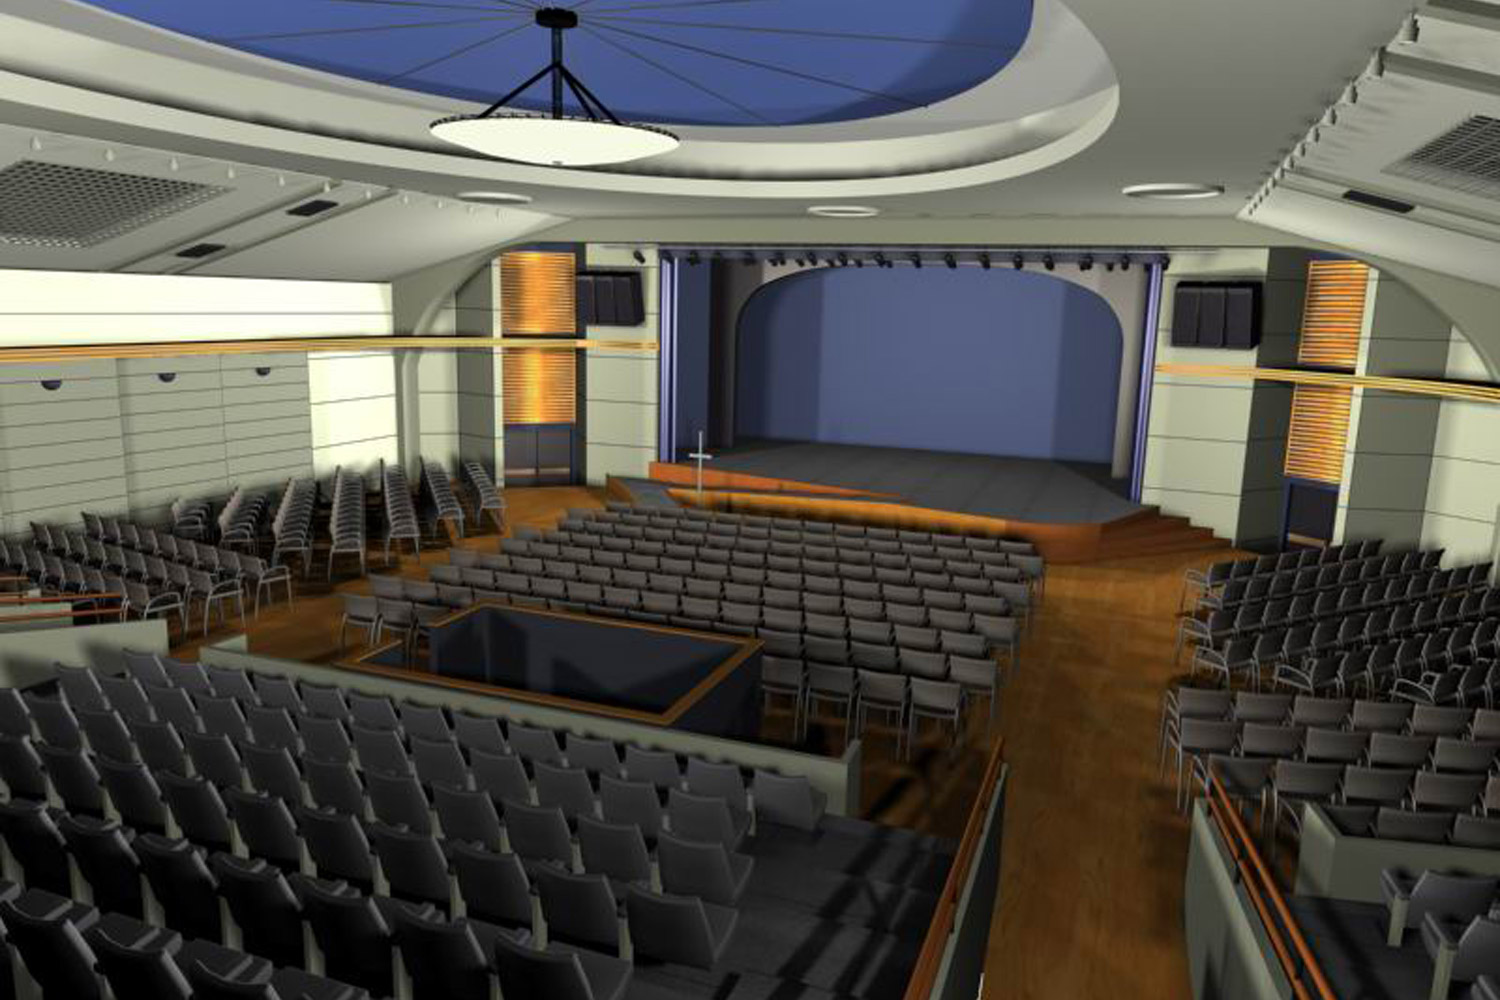 WSDG completed a major renovation project for Crossroads Tabernacle and Boden Center for The Performing Arts, a prominent inner-city church in The Bronx, NY. The facility includes an audio/video production studio, and a completely refurbished 800 seat theater. Theater Render 2.